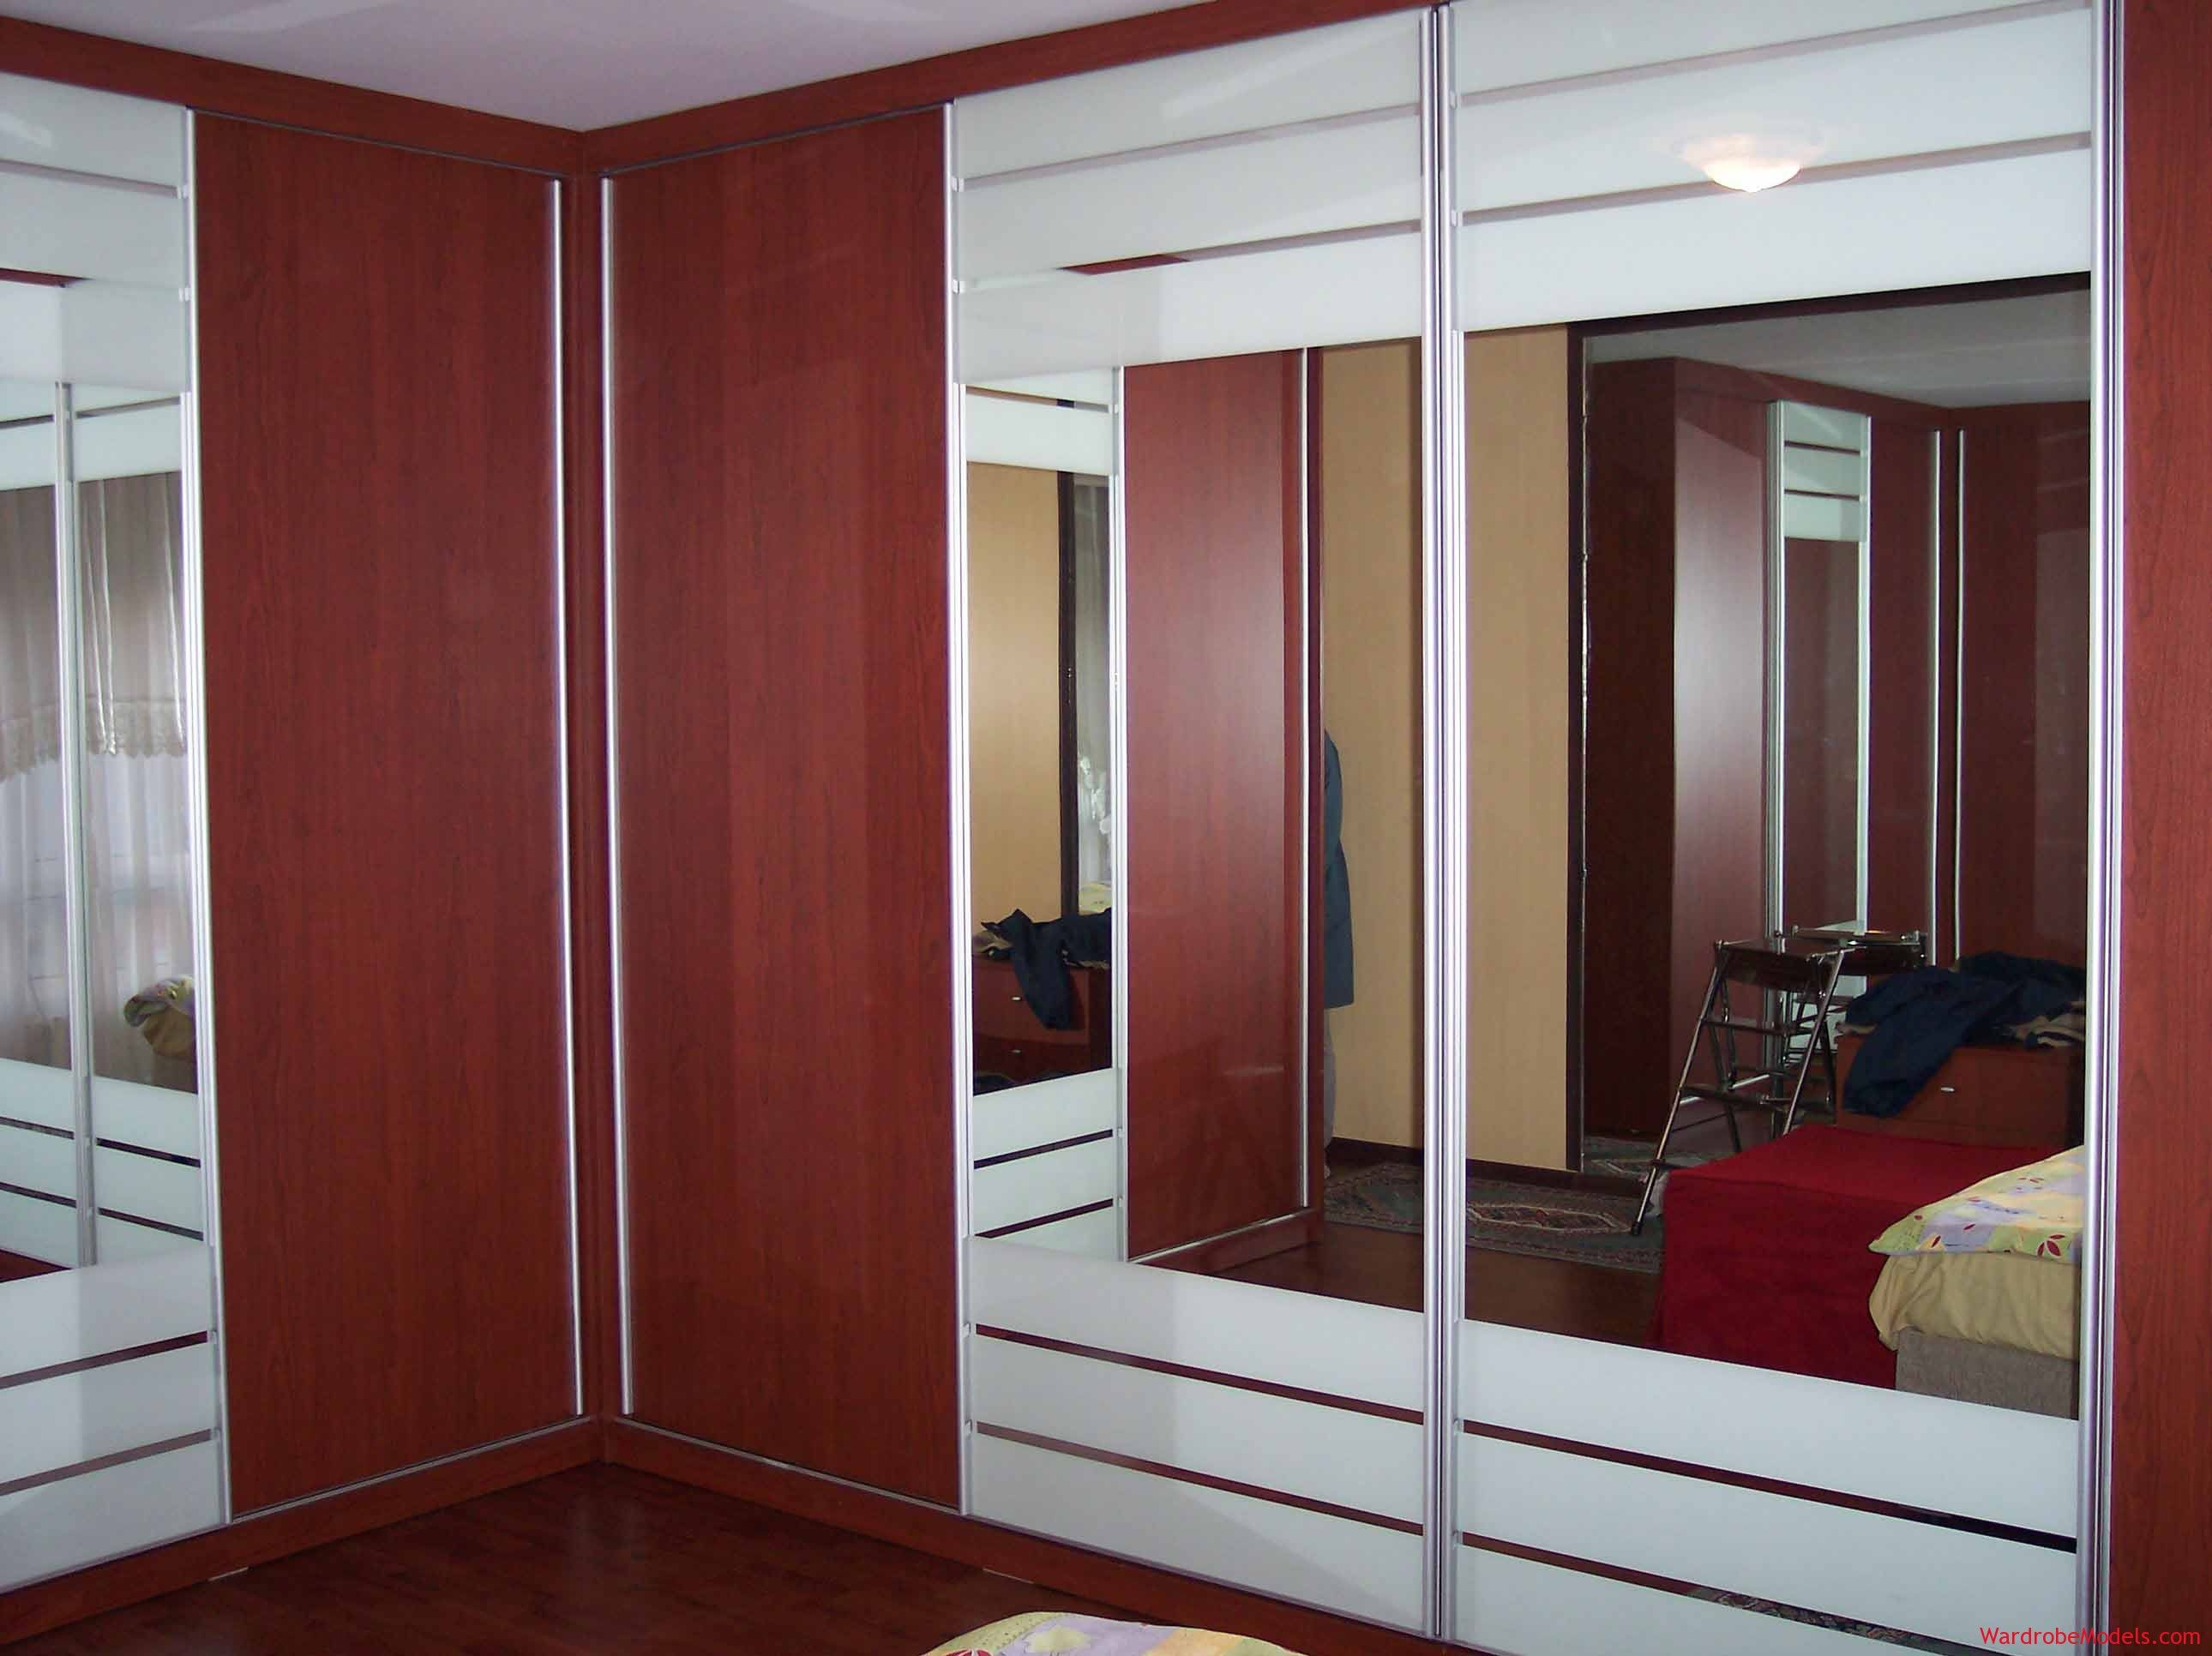 Bedroom wardrobe designs - Bedroom Exciting White Mirrored Frames Doors Wardrobe Design With Wooden Panels Combination As Inspiring Clothes Cabinetry In Master Bedroom Decors Perfect